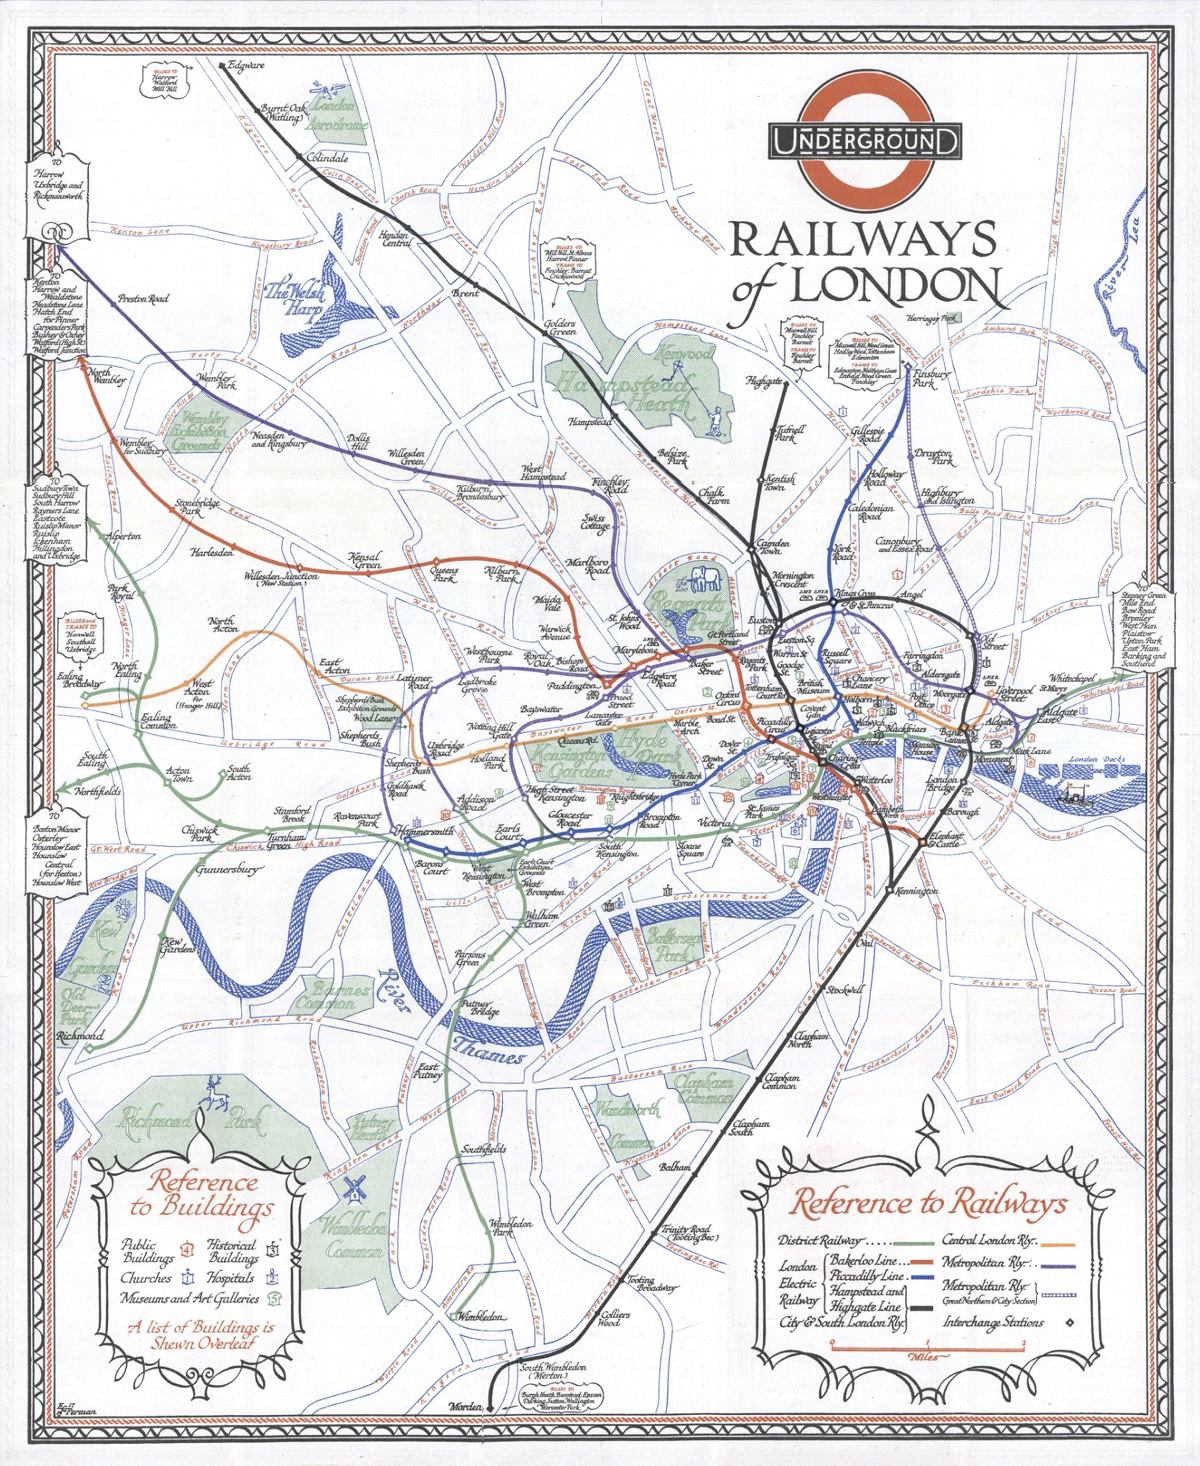 Underground railways of london 1928 mapping london the tube map is a design classic the straight lines even spacing and lack of unnecessary above ground detail has become a hall mark of metro maps across gumiabroncs Images